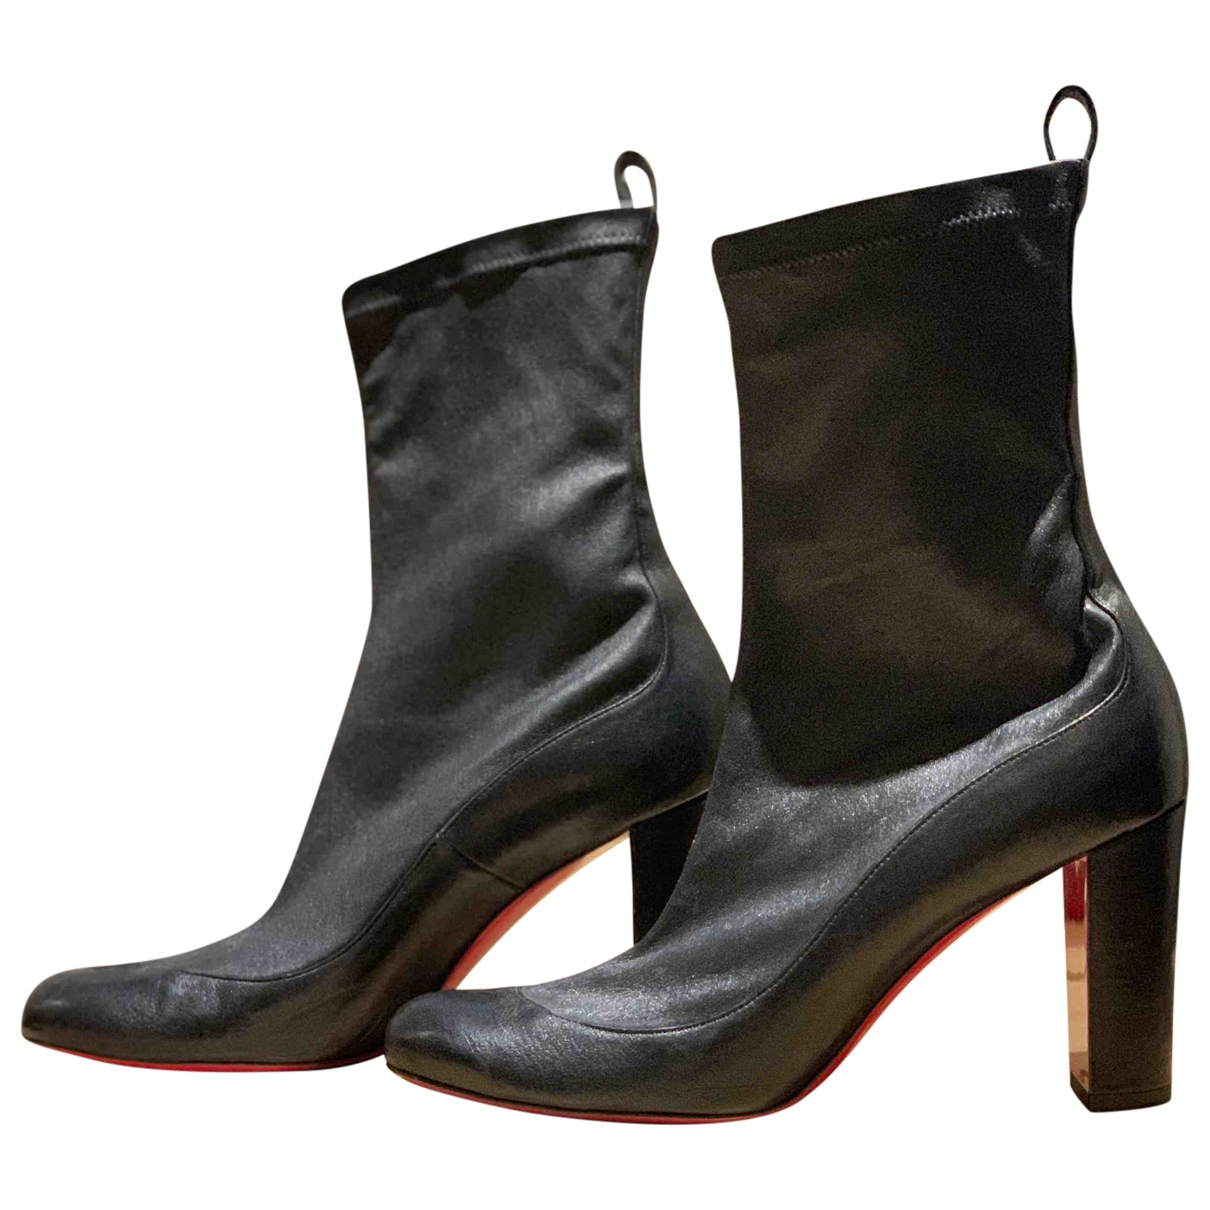 Christian Louboutin \N Black Leather Ankle boots for Women 37.5 EU